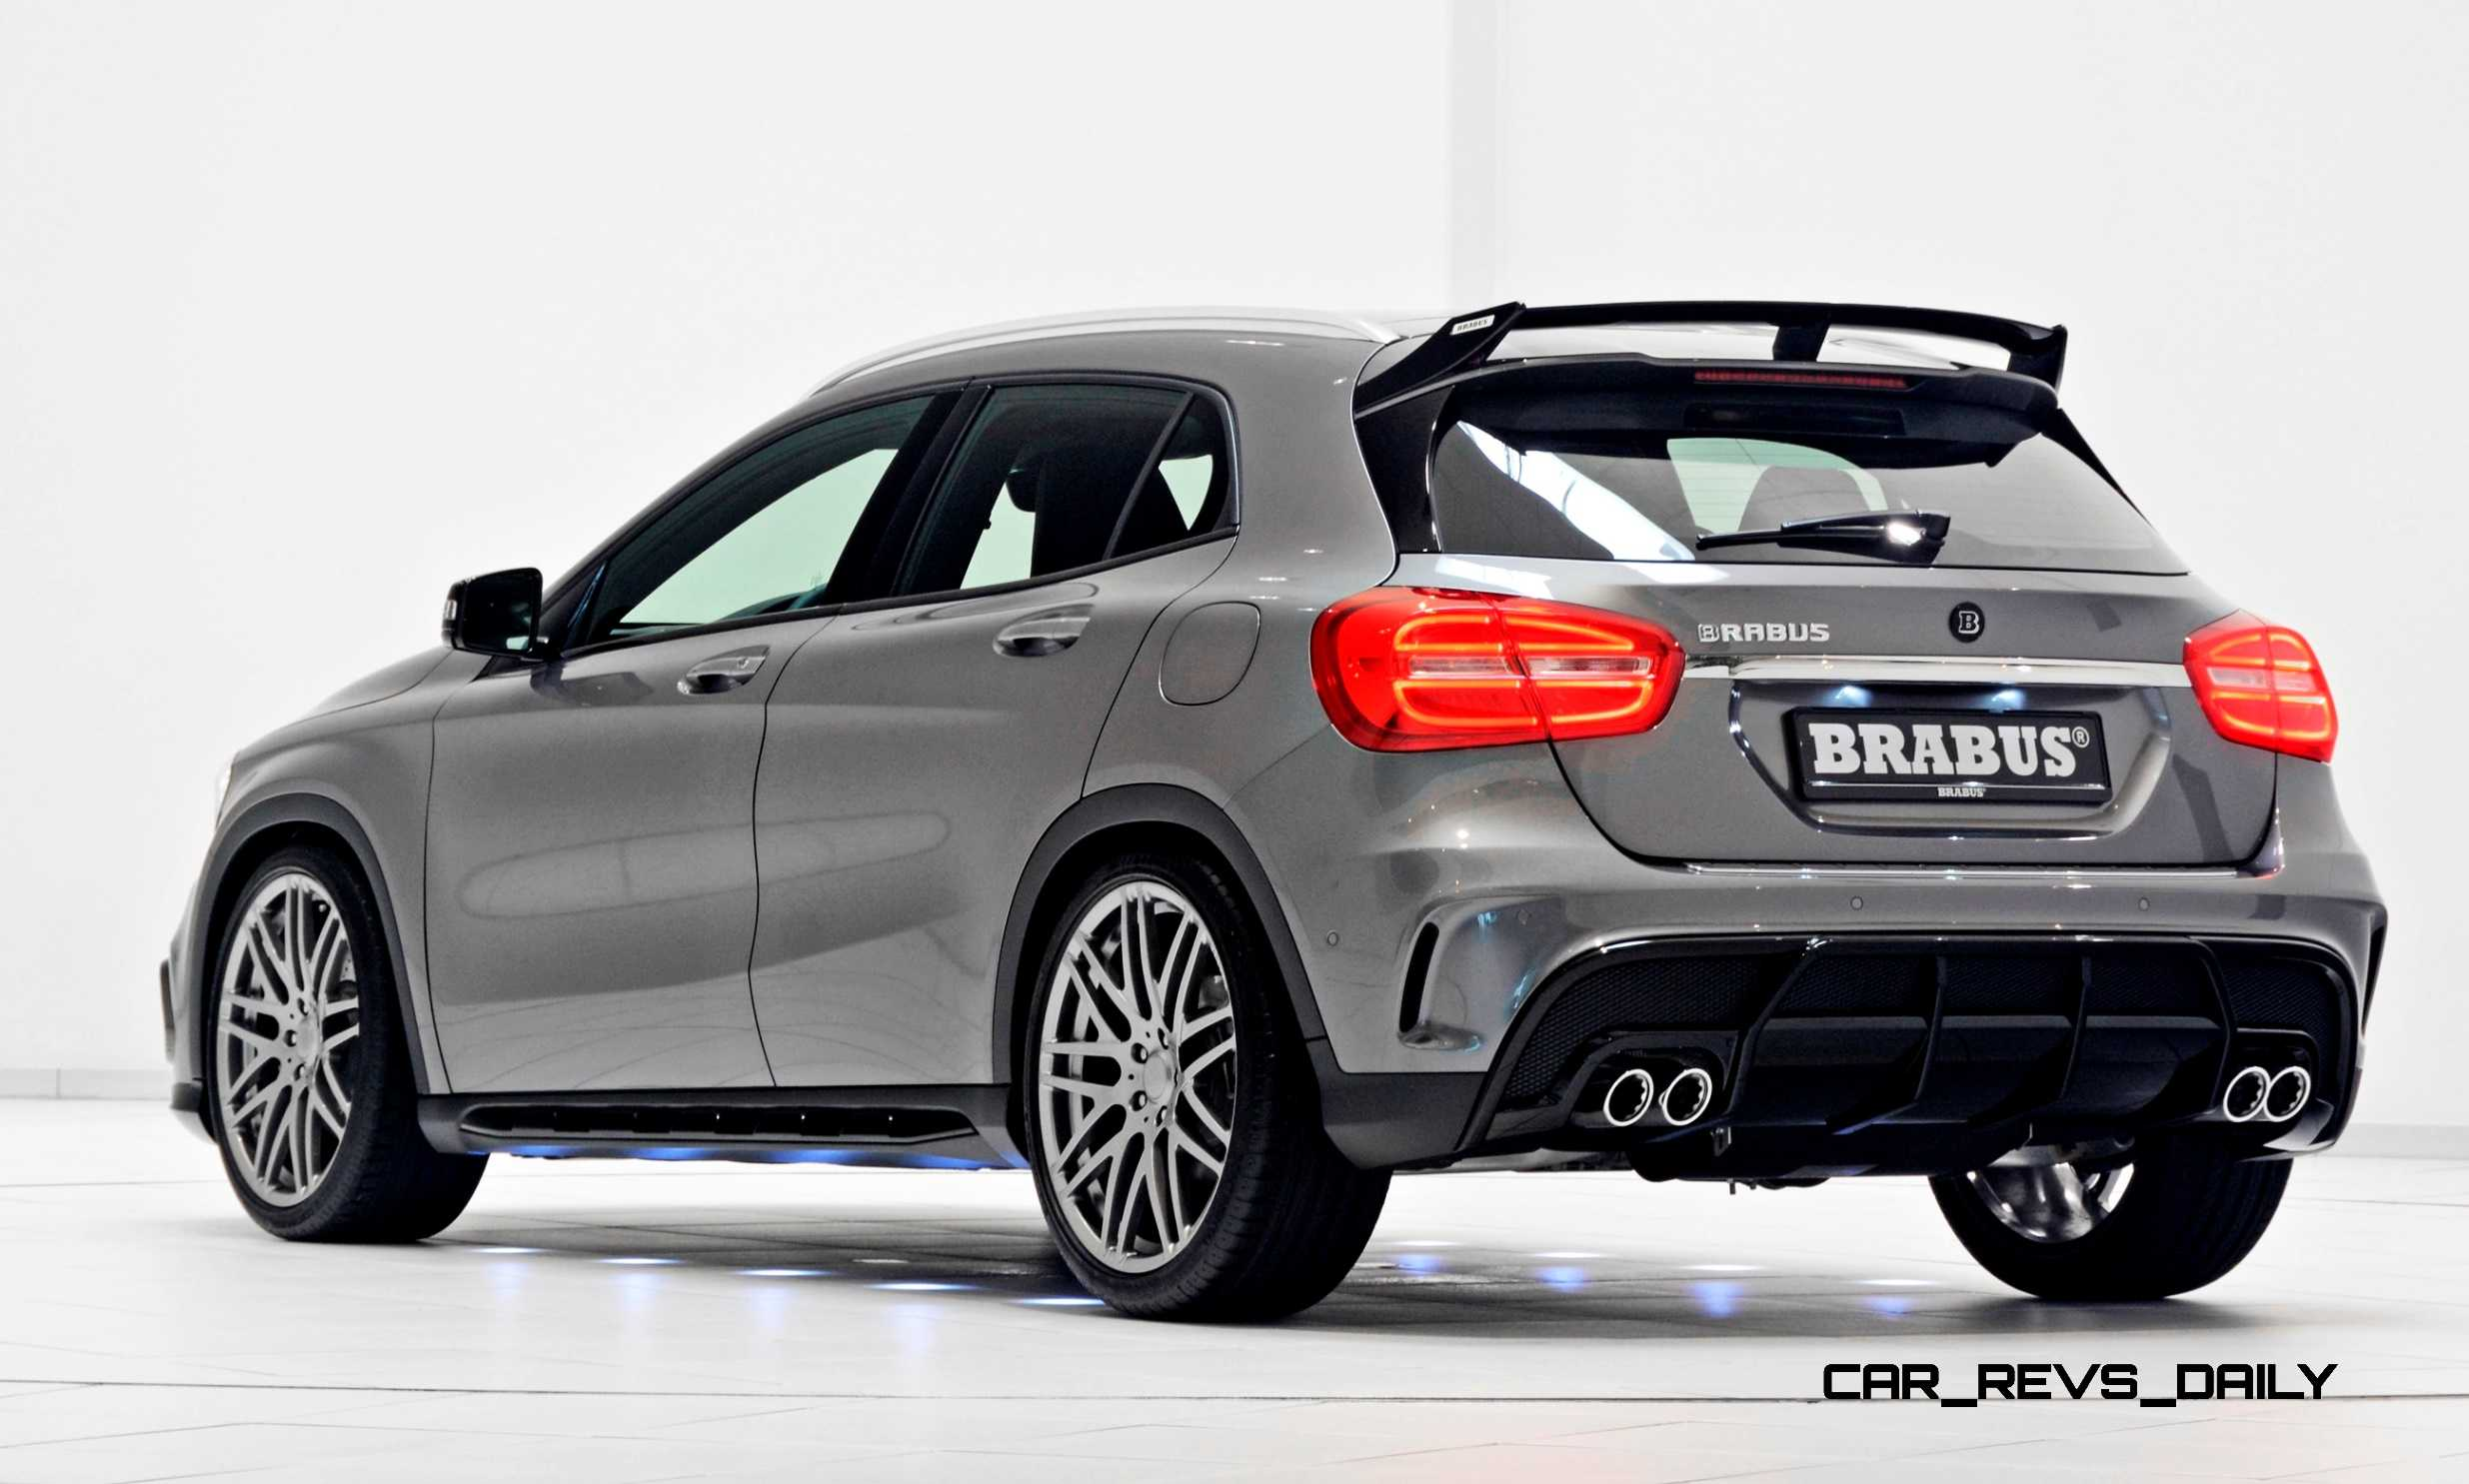 2015 brabus mercedes benz gla class 3. Black Bedroom Furniture Sets. Home Design Ideas